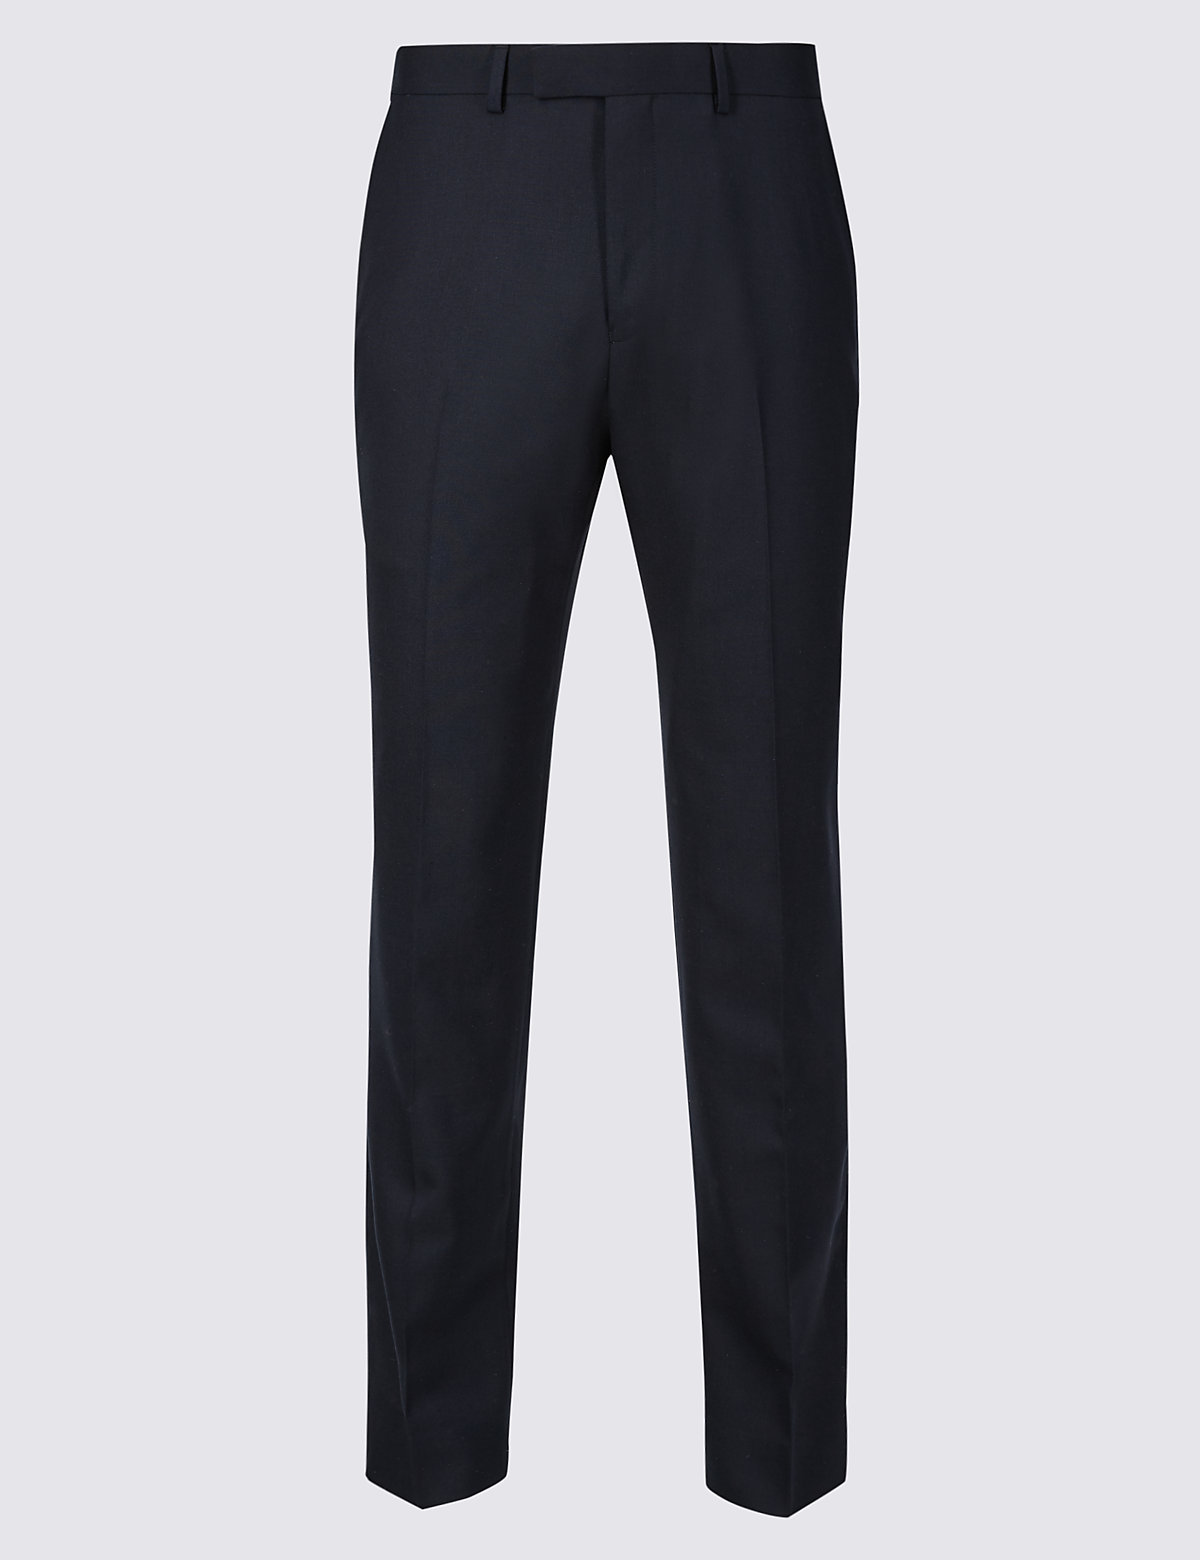 Marks & Spencer Navy Tailored Fit Wool Trousers